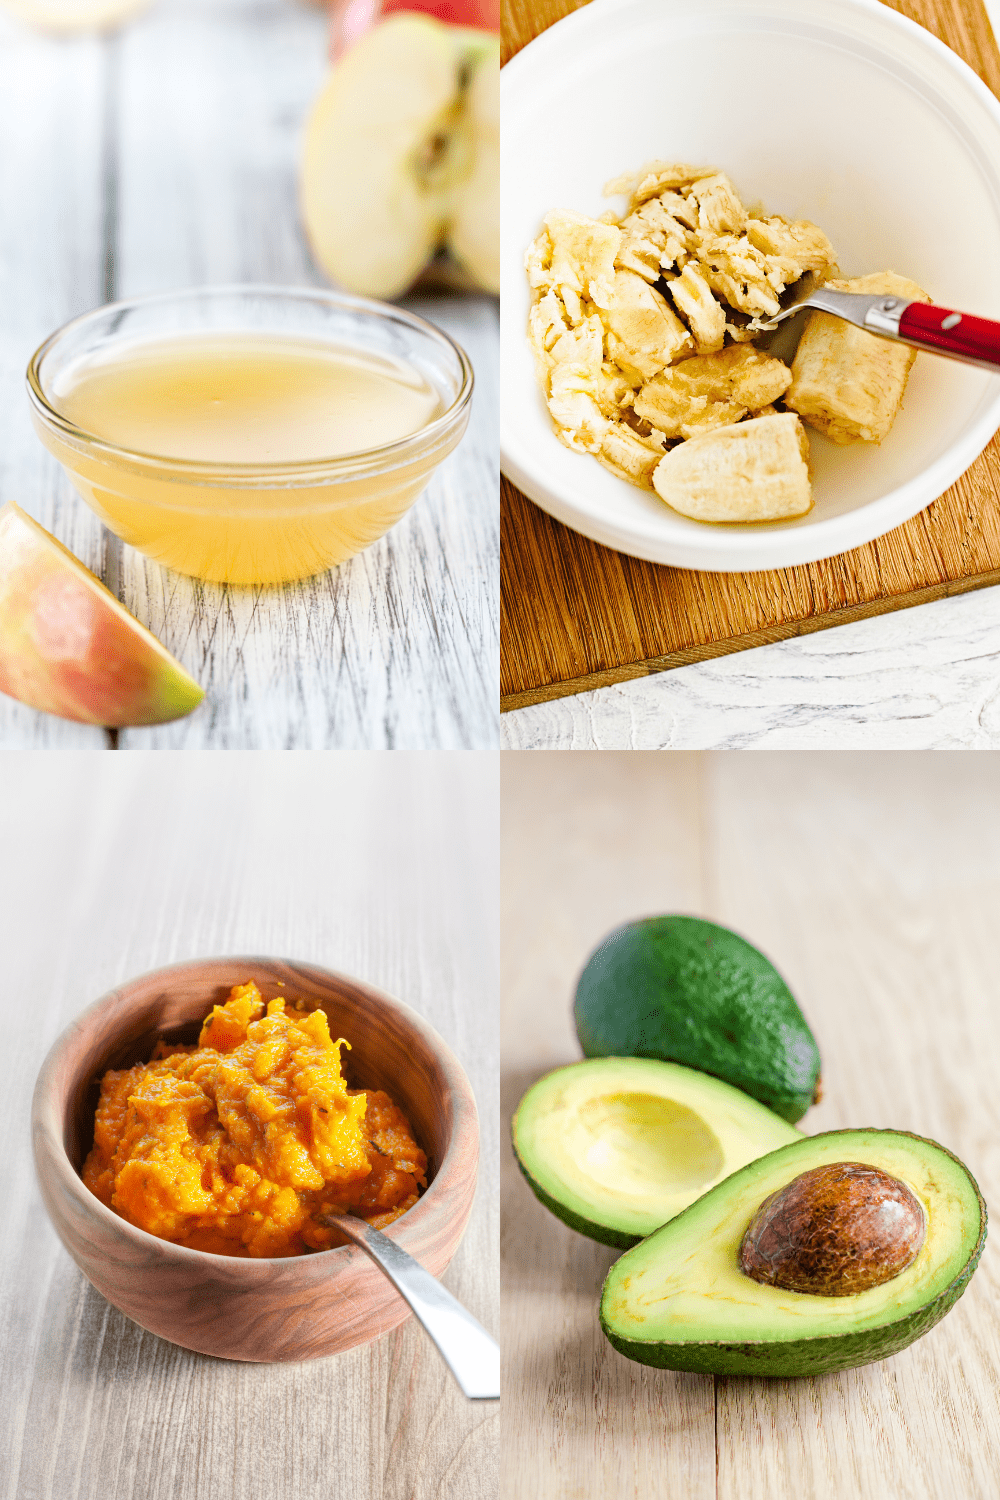 collage of applesauce, mashed bananas, avocados, and pureed pumpkin on wooden surfaces